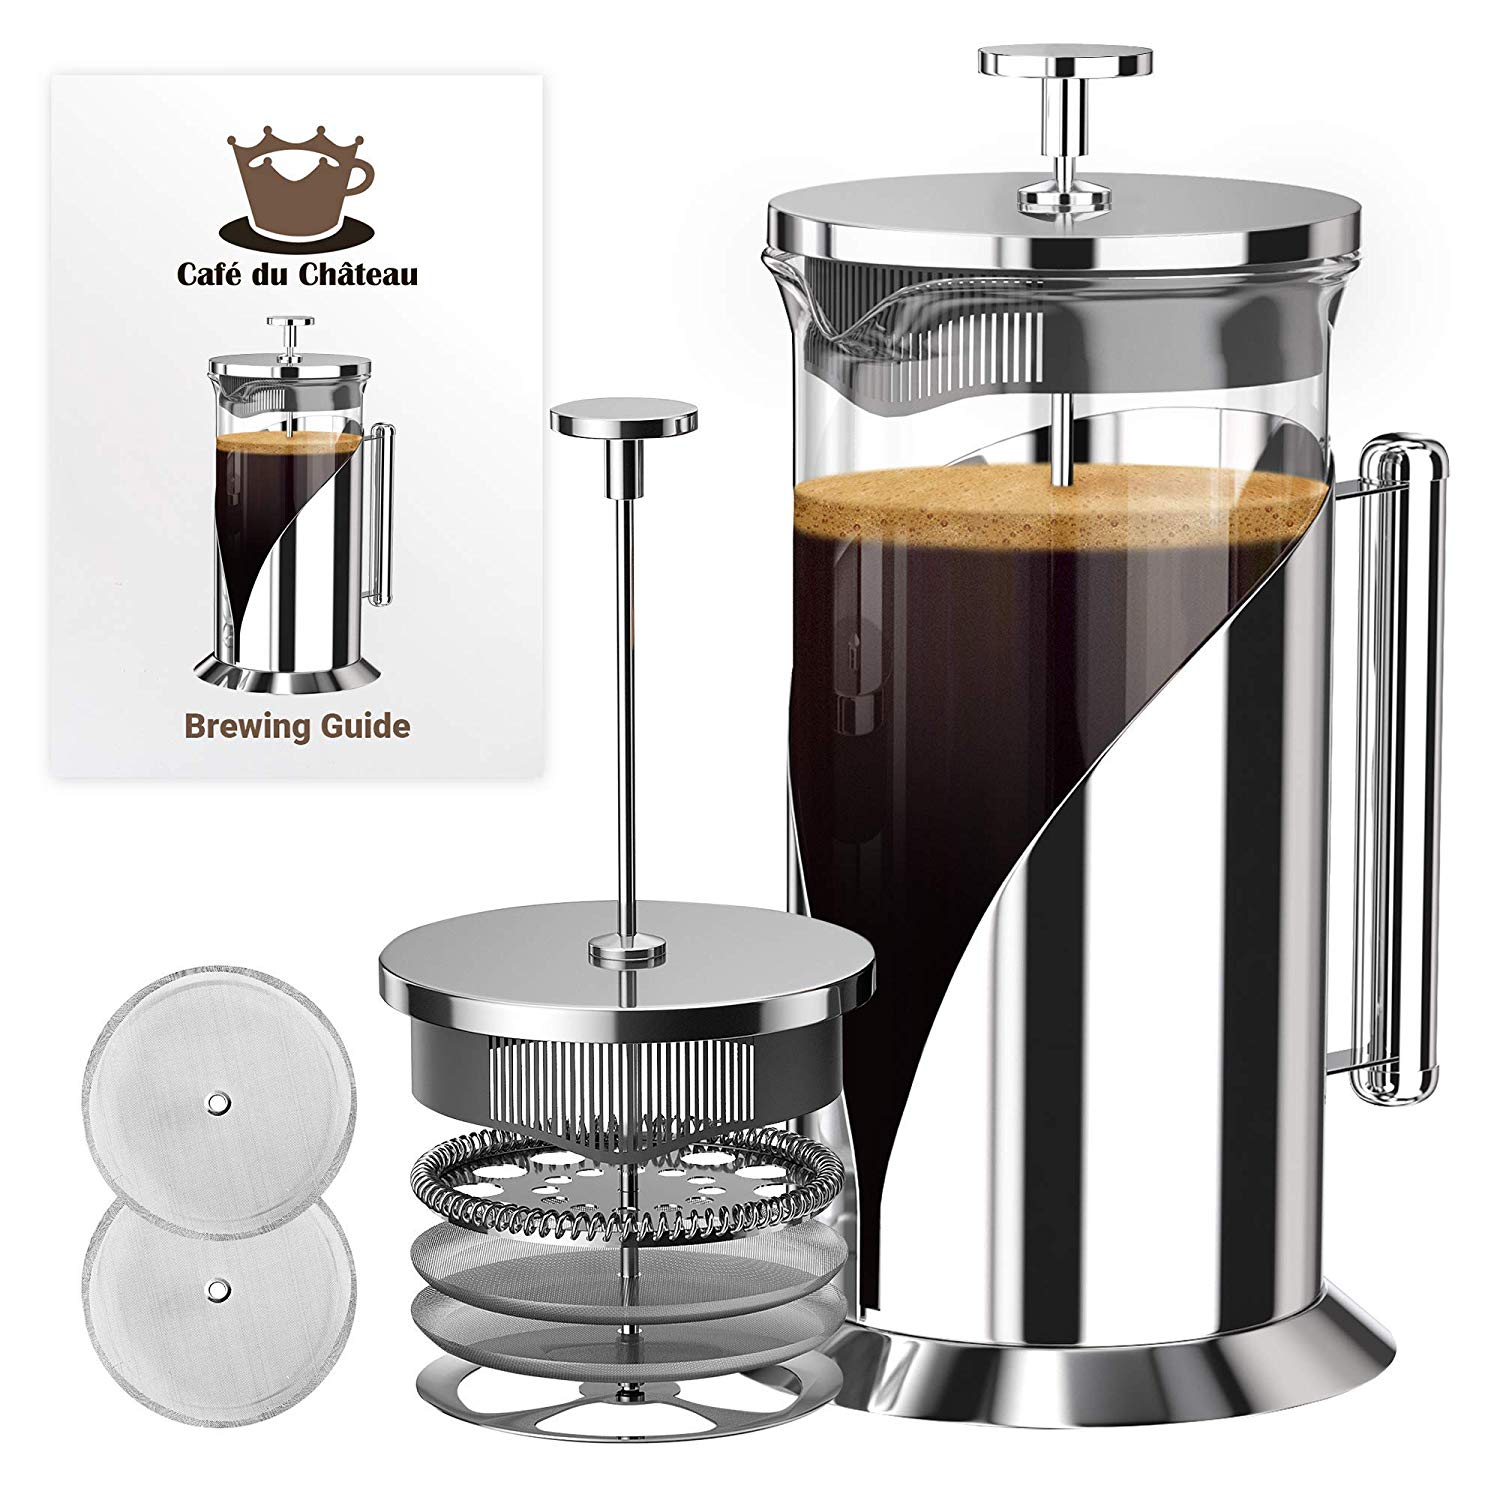 Cafe du Chateau French Press